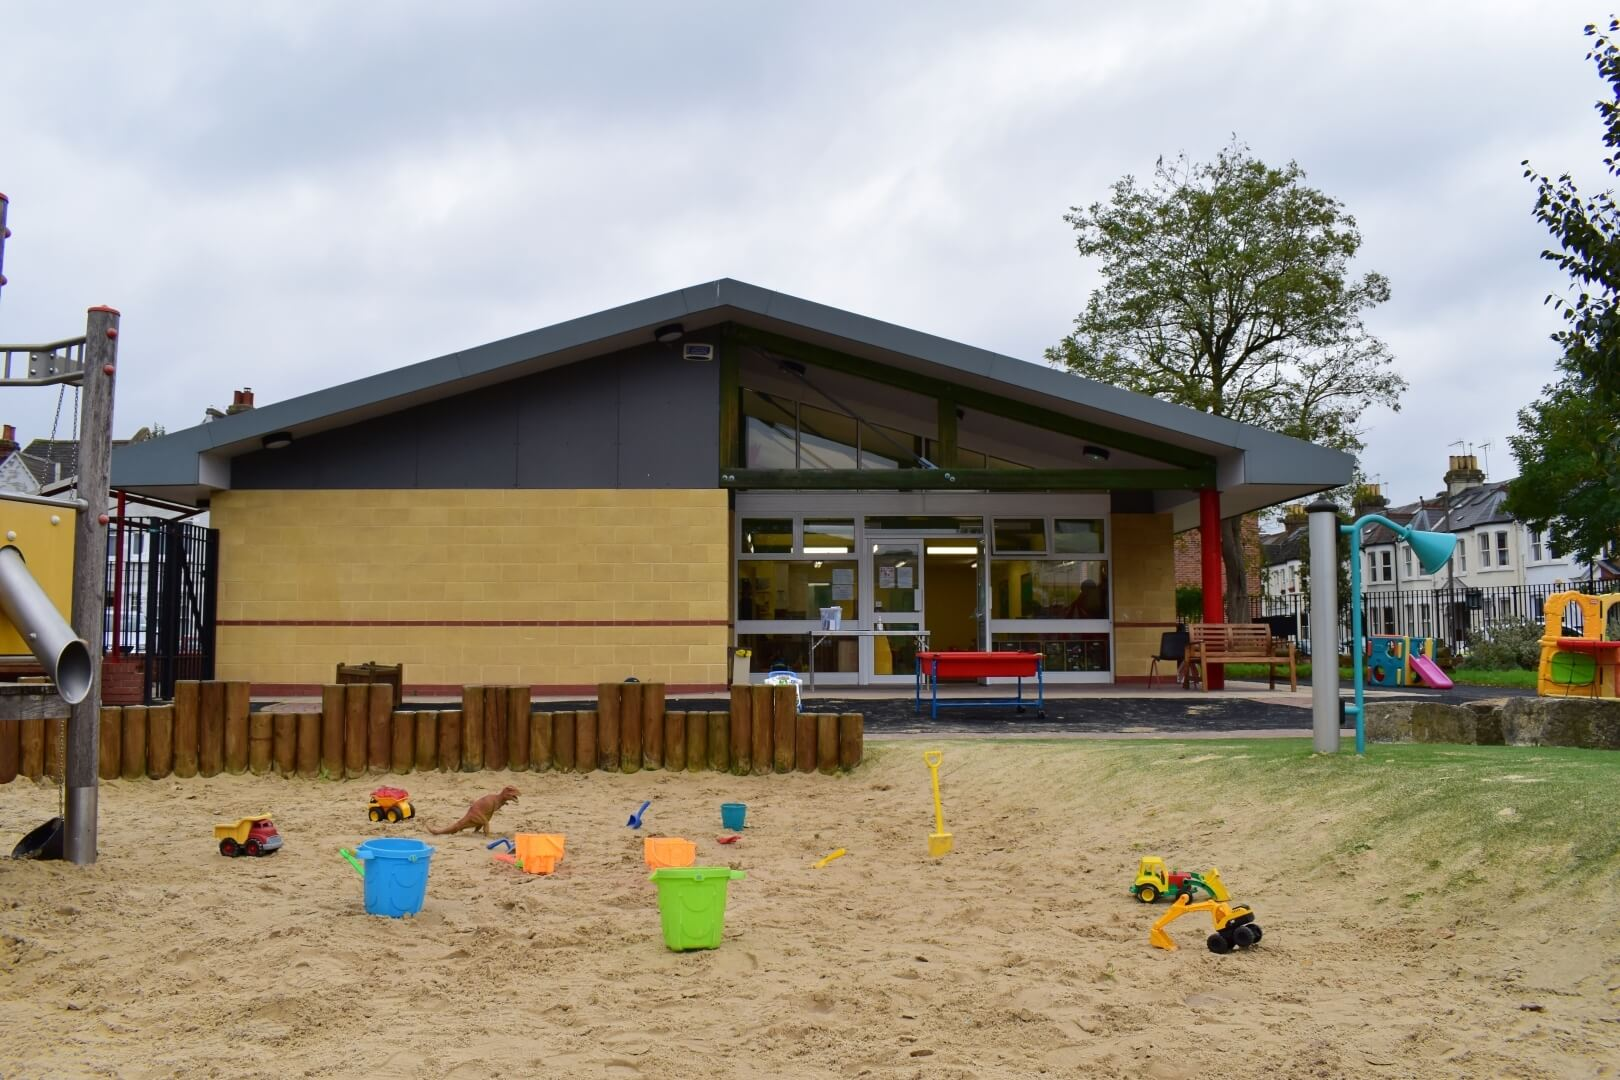 Rays Playhouse Childrens Centre Sands End Fulham (30)